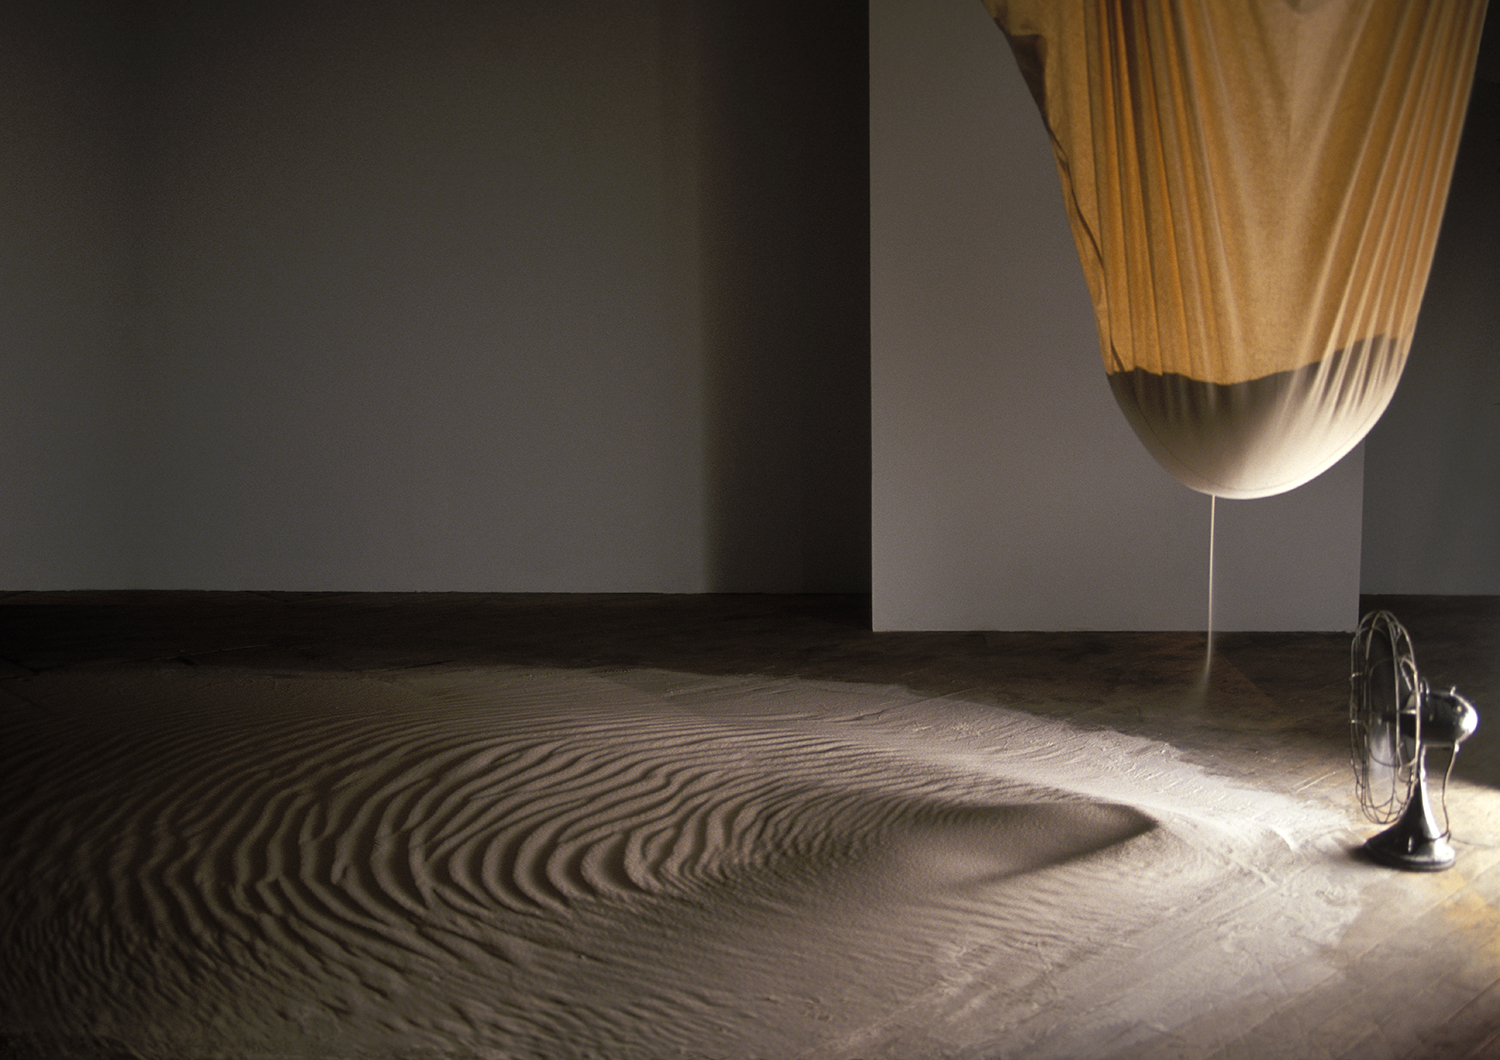 Drift, fan, bag, 1,000 lbs of sand, 2000